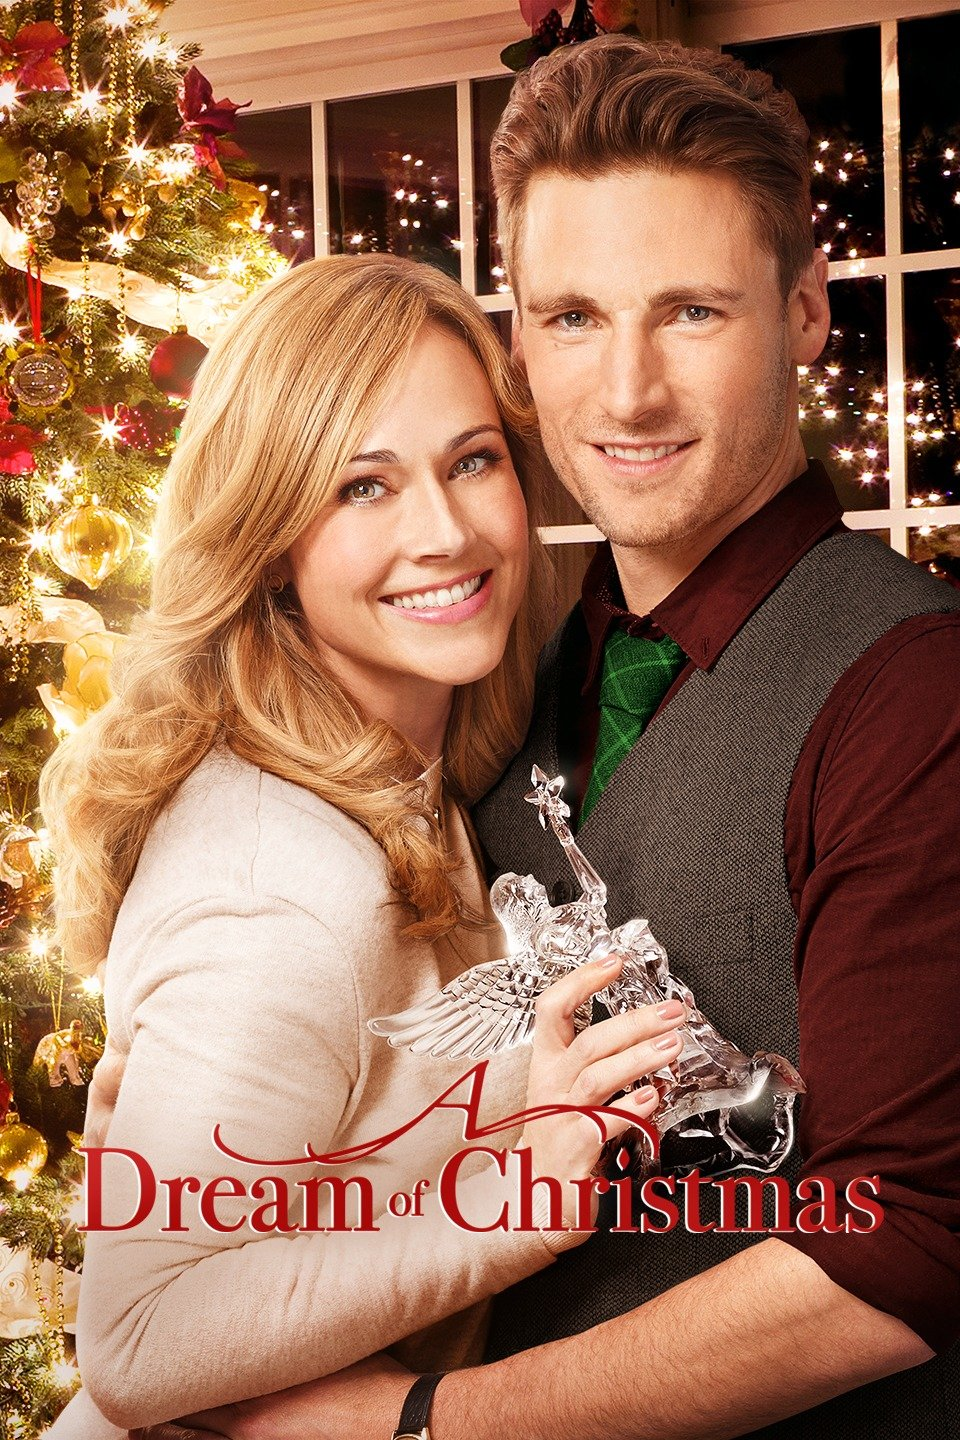 Image result for A Dream of Christmas movie